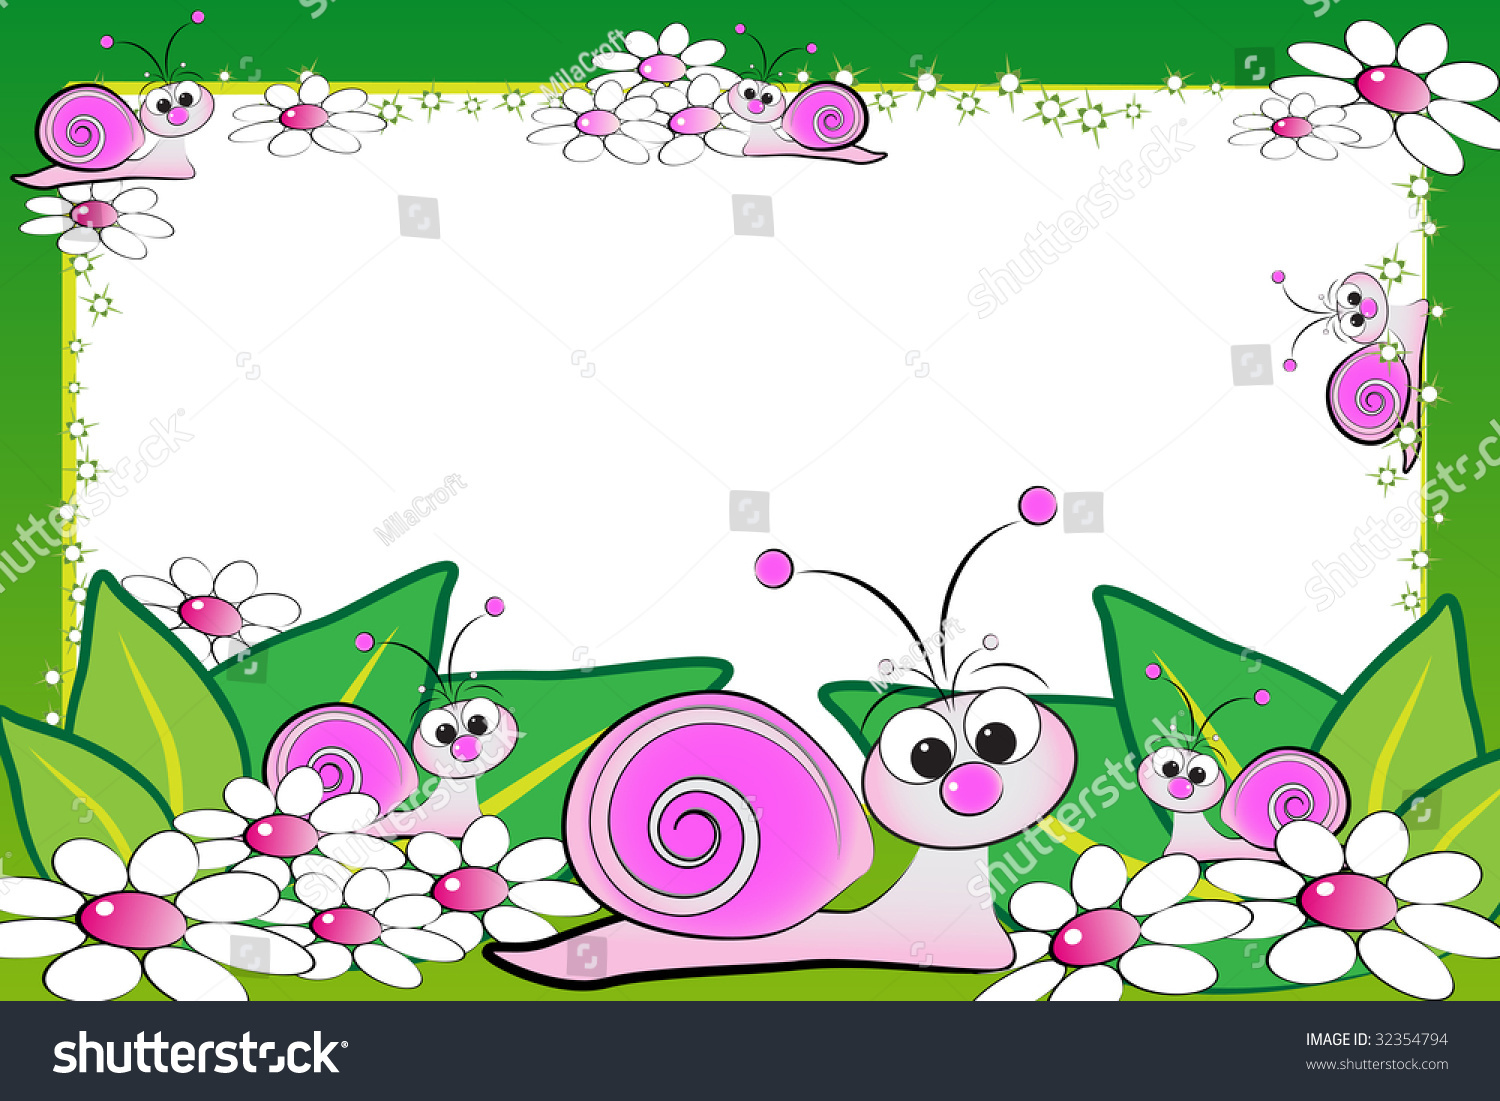 Kid scrapbook with snails and white daisies - Photo or message ...